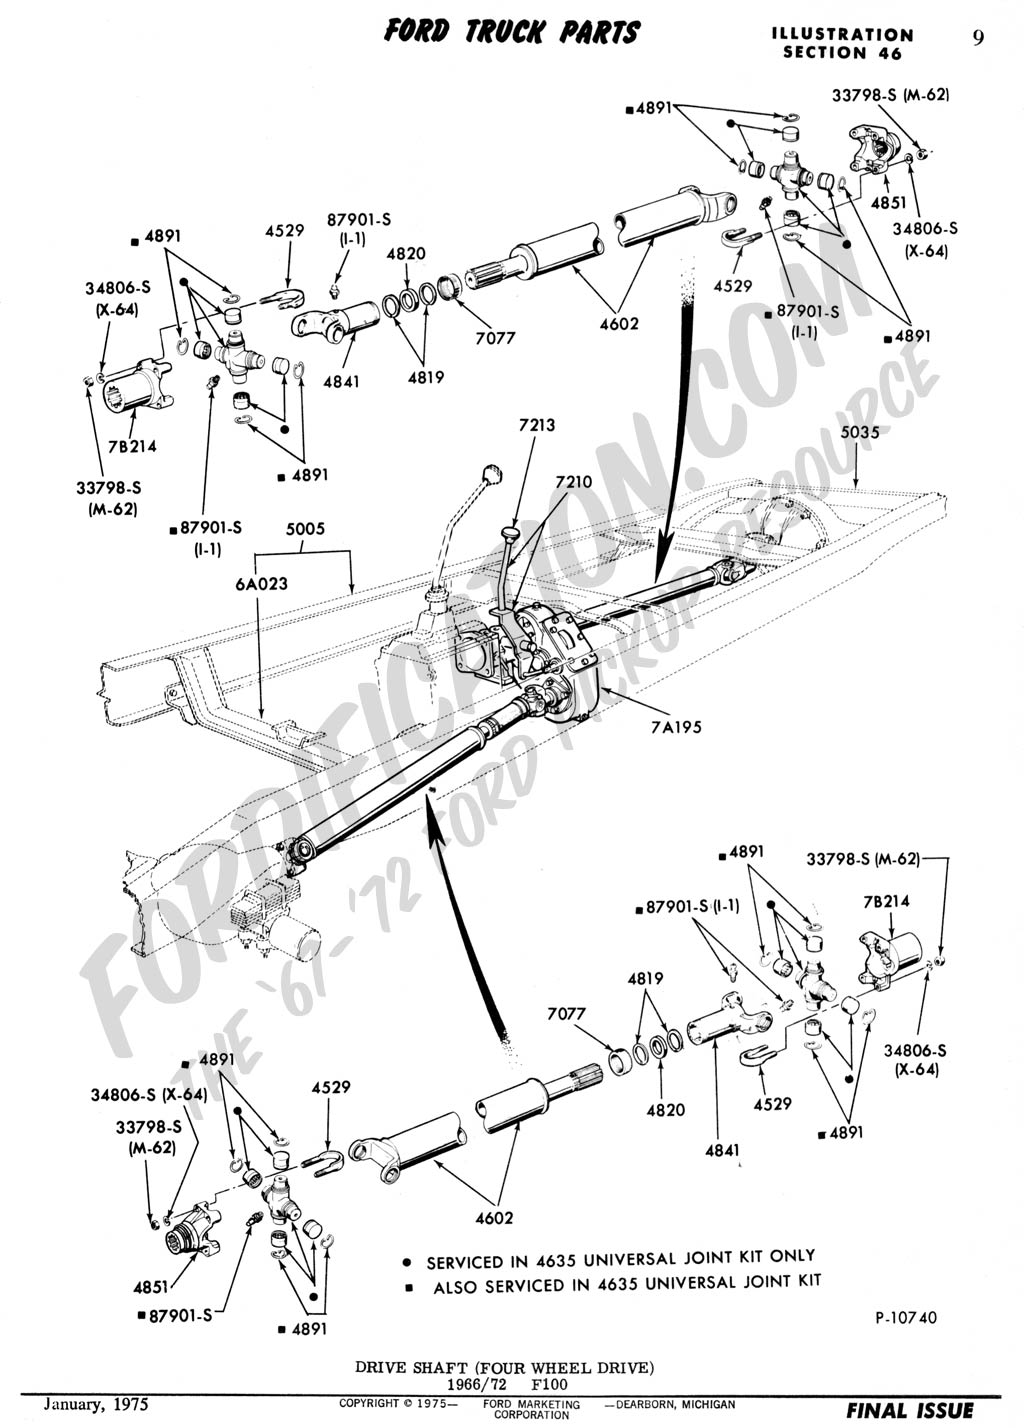 hight resolution of 1999 ford ranger 4x4 front axle diagram images gallery ford f350 front drive axle diagrams